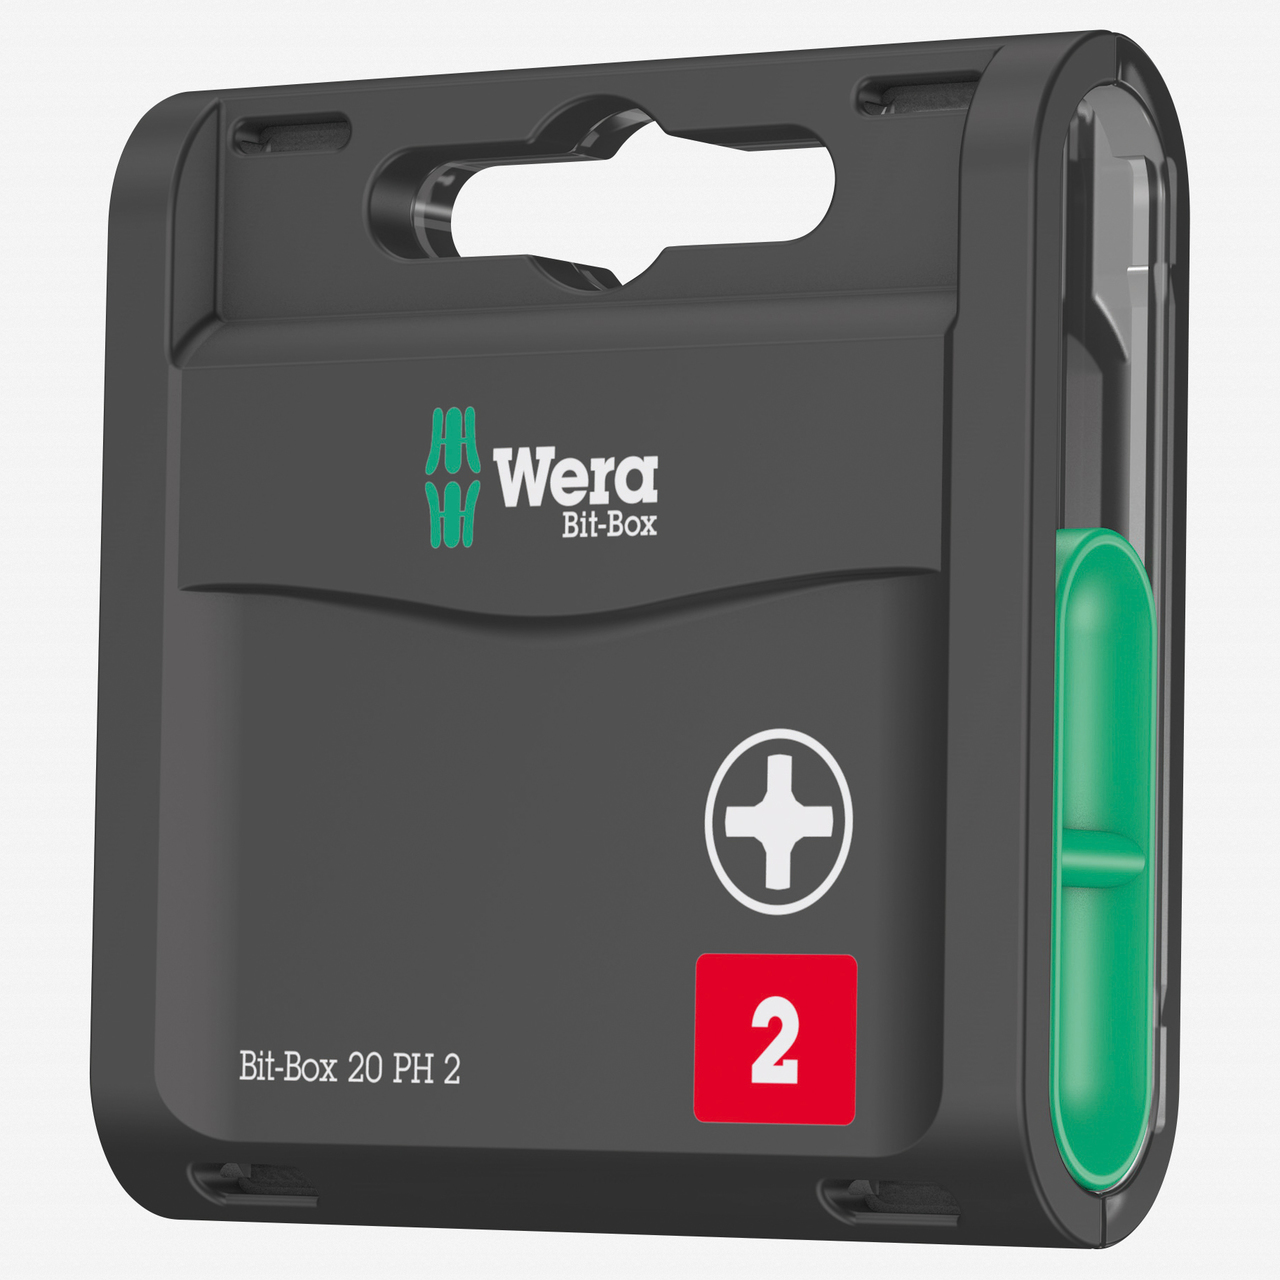 Wera 057750 Bit-Box 20 PH Phillips #2 - KC Tool